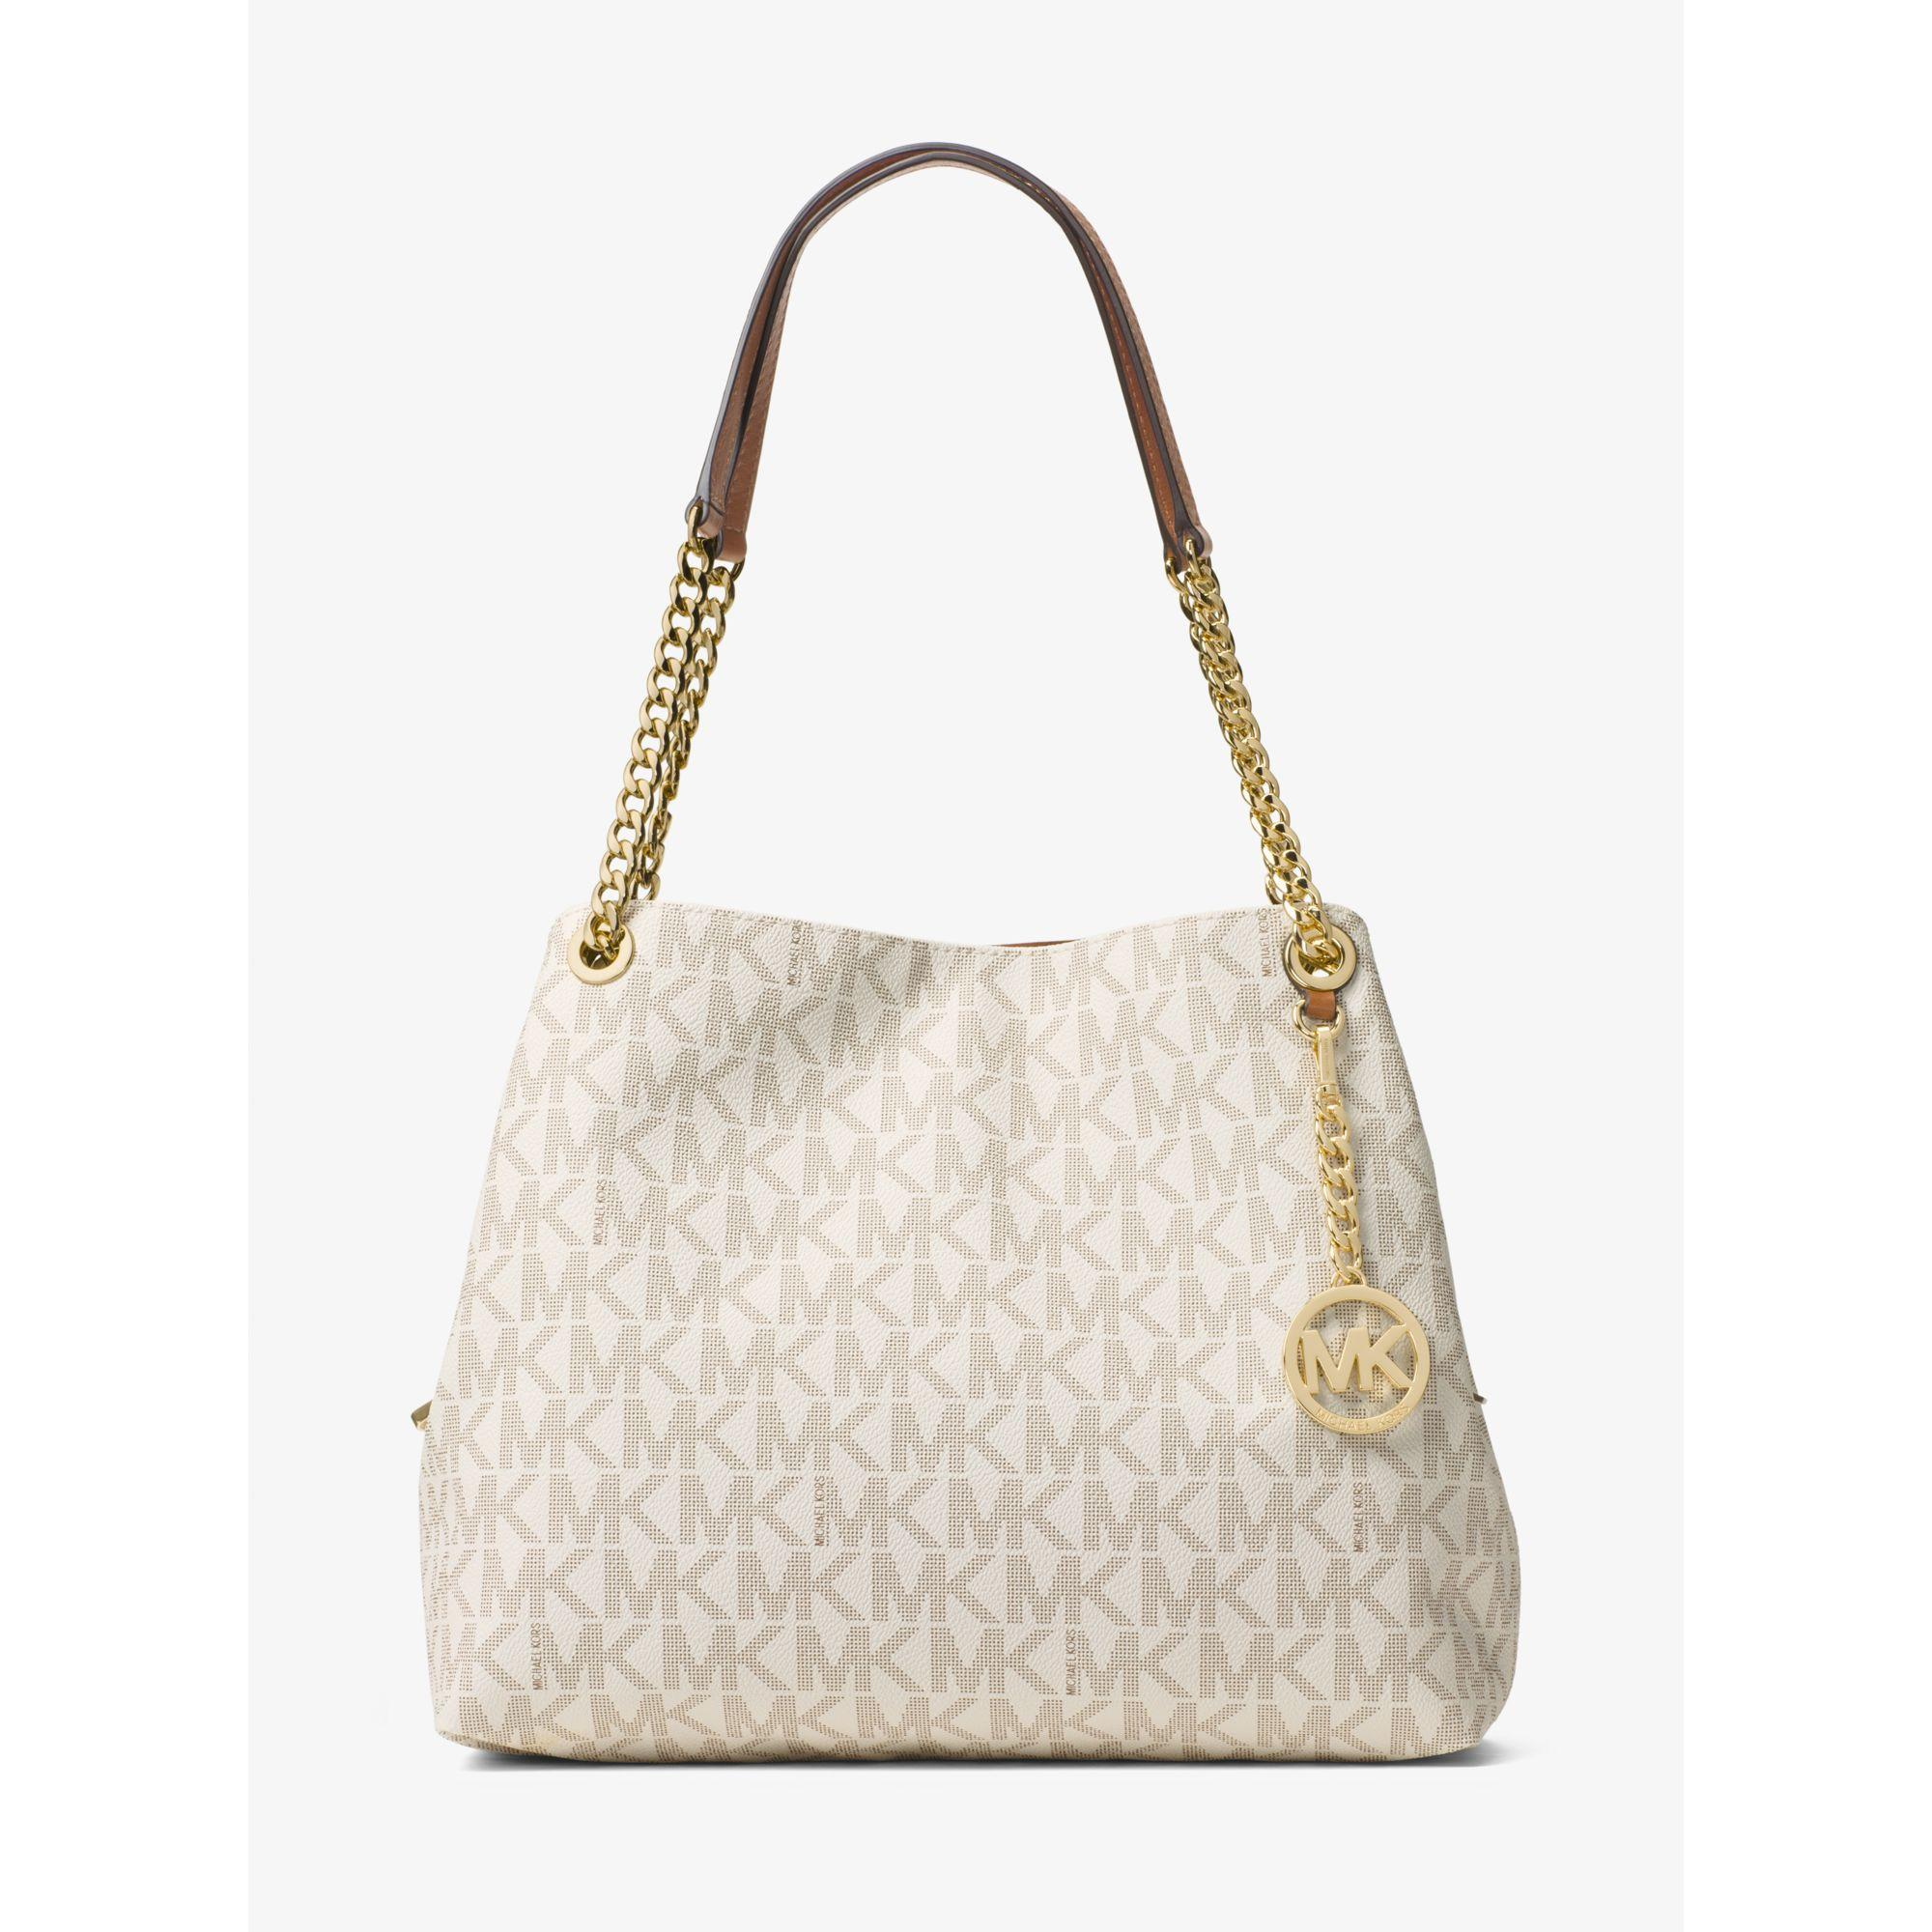 50e40ccefa36 Lyst - Michael Kors Jet Set Large Logo Shoulder Bag in Natural